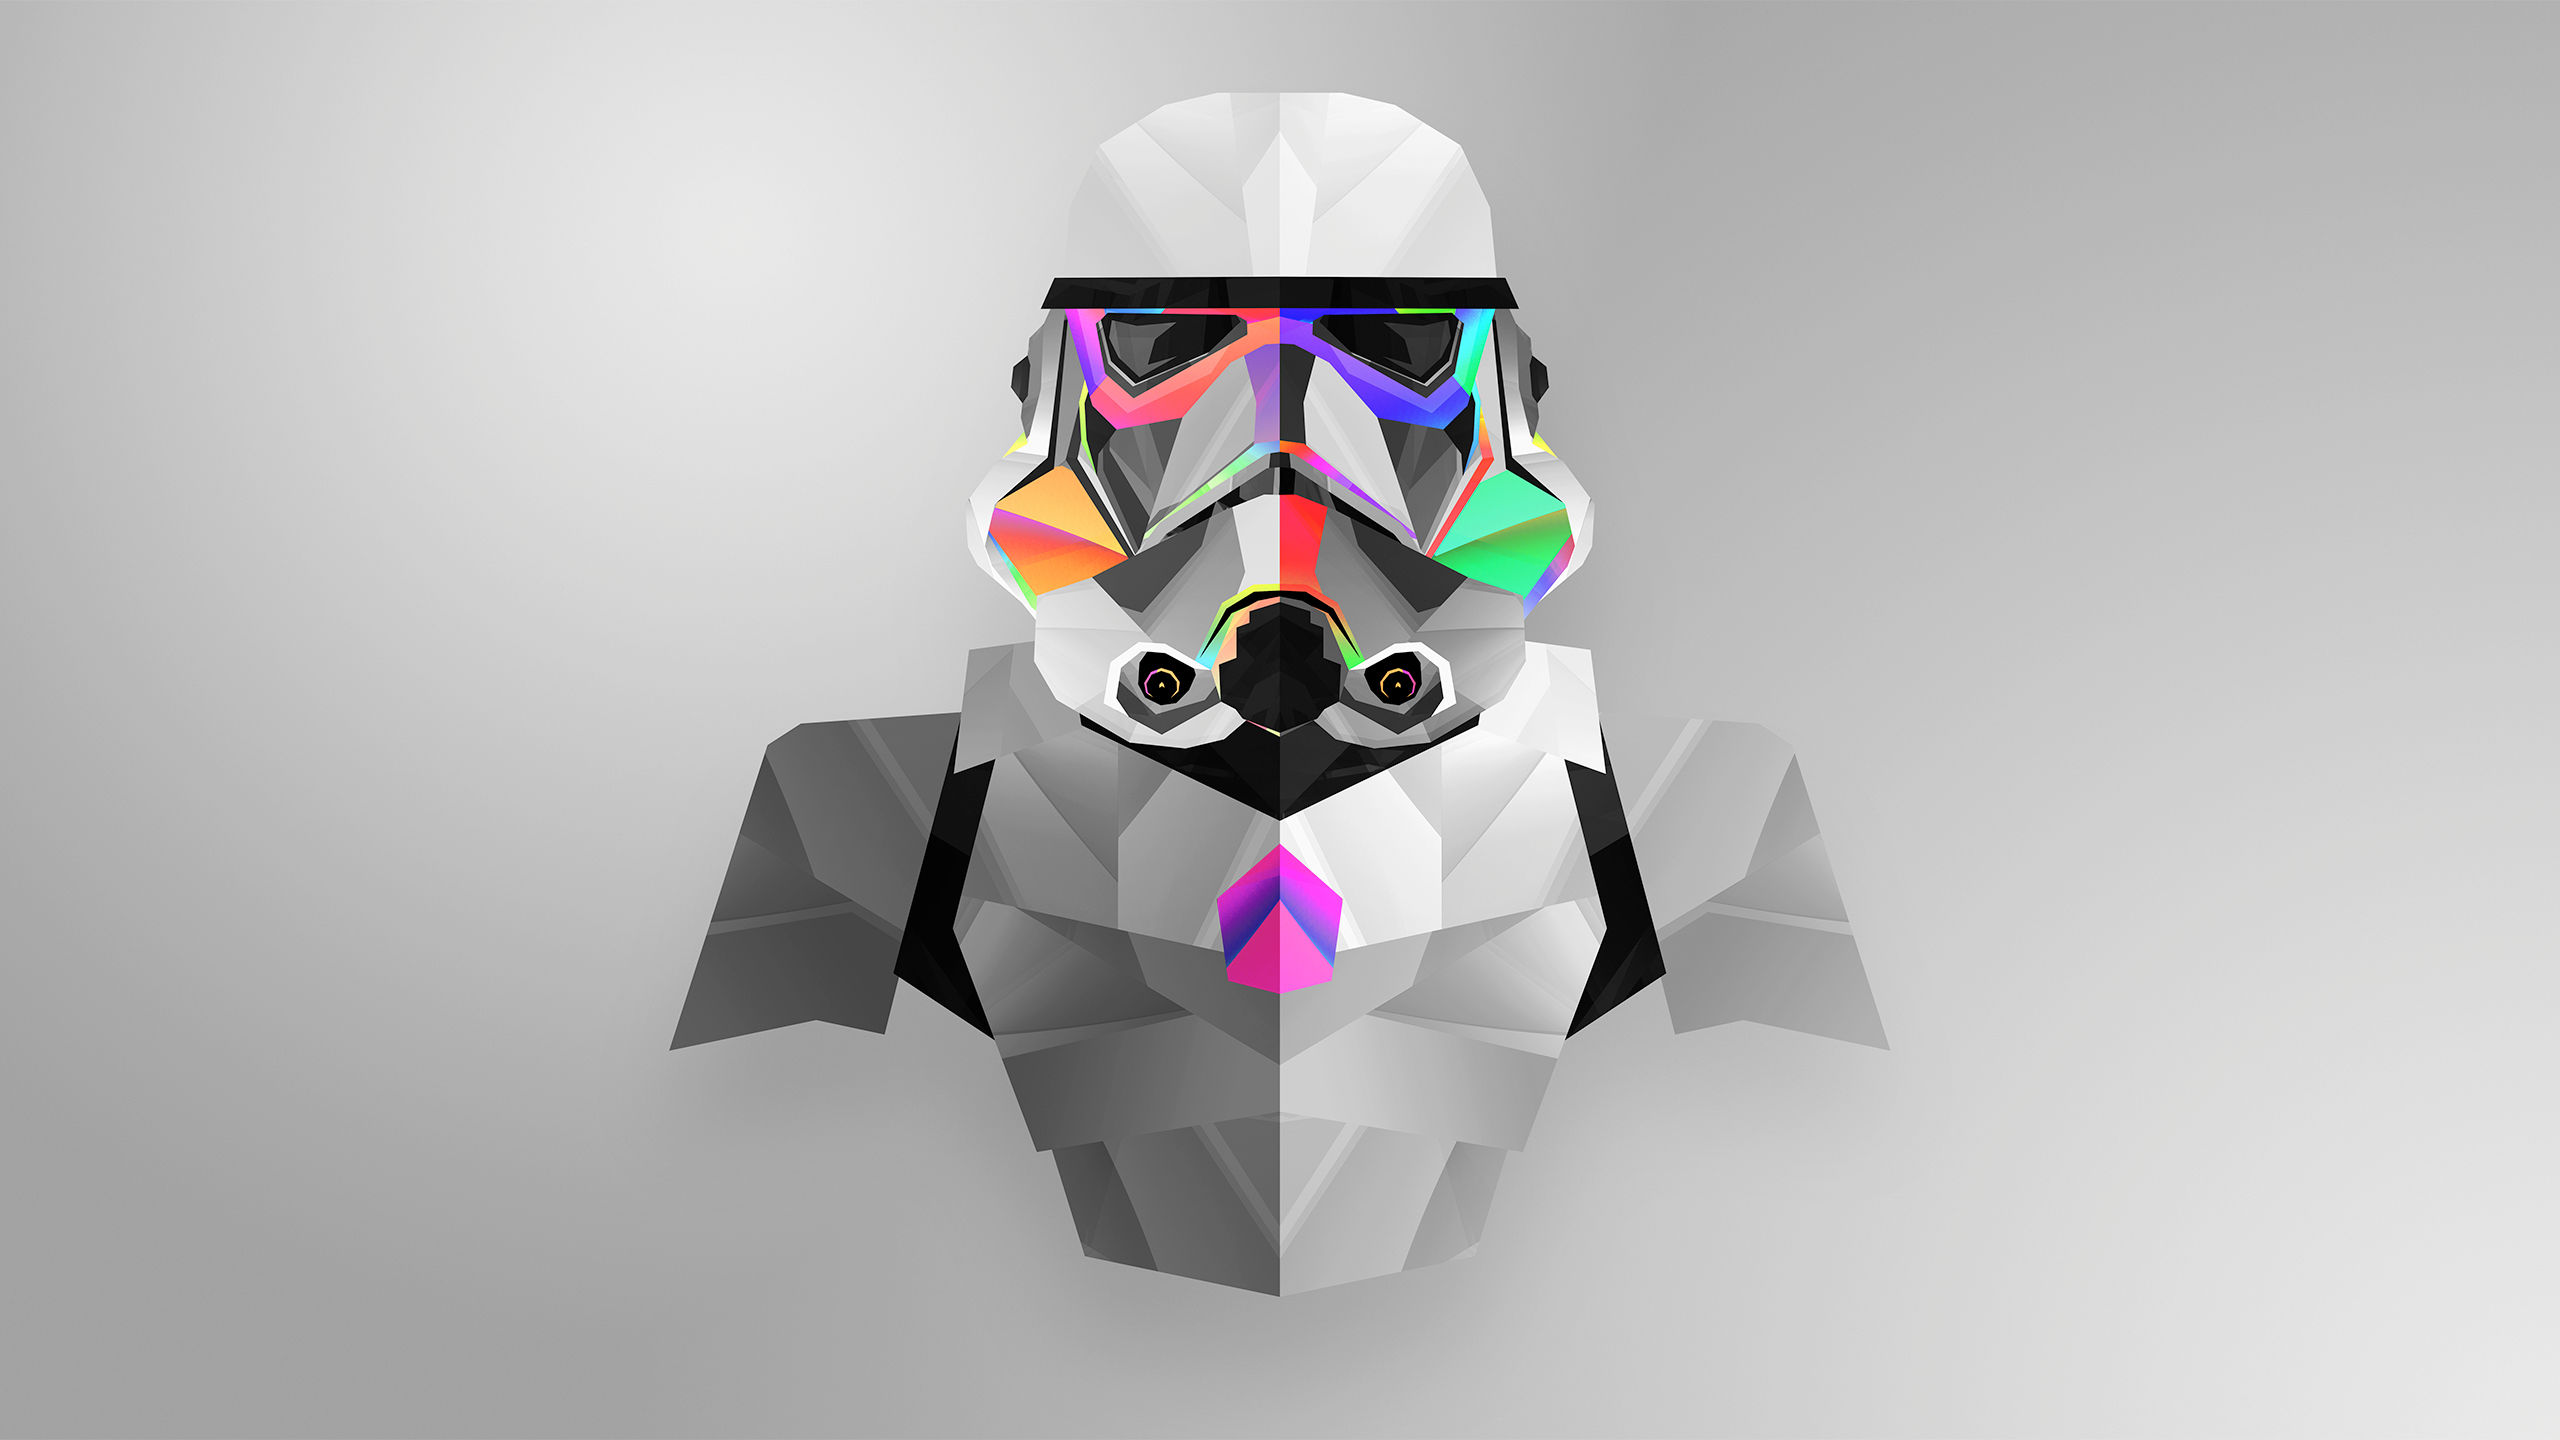 Origami Star Wars Clone Trooper Helmet